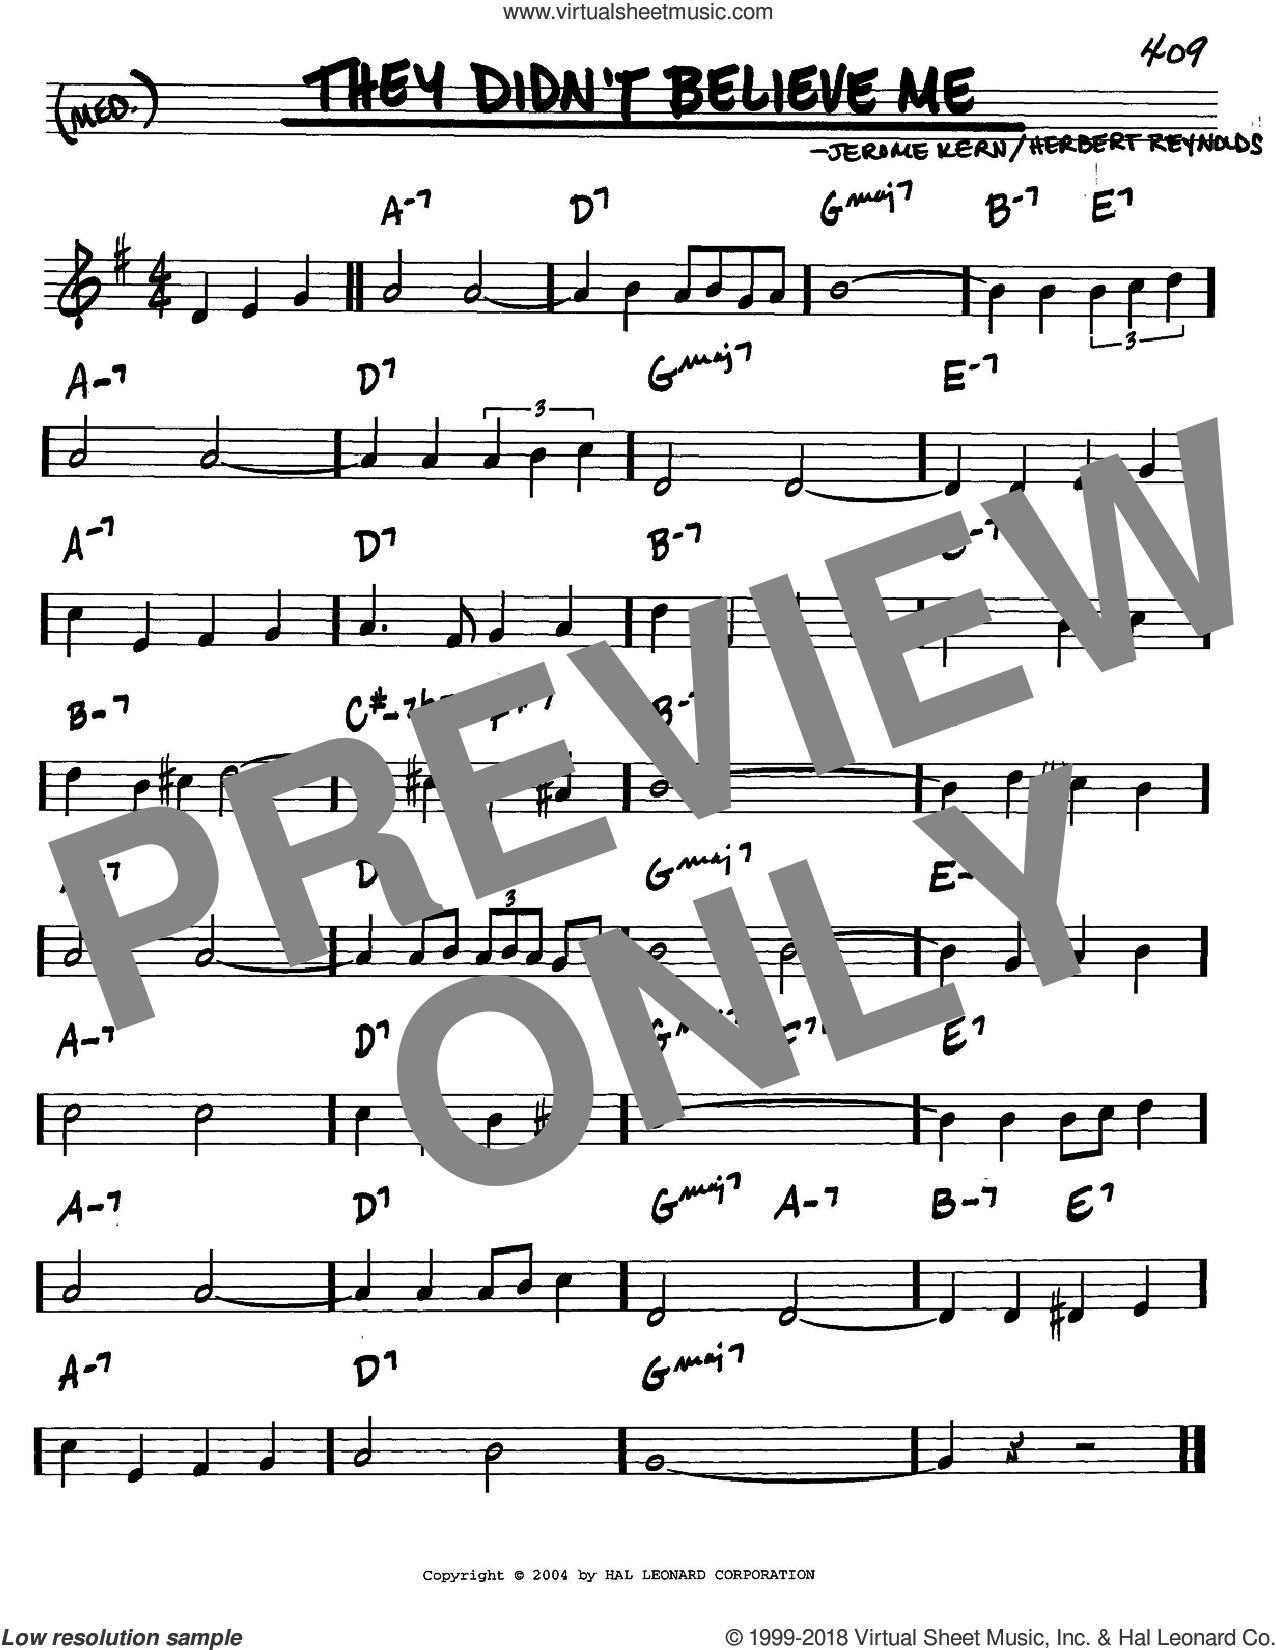 They Didn't Believe Me sheet music for voice and other instruments (C) by Herbert Reynolds and Jerome Kern. Score Image Preview.